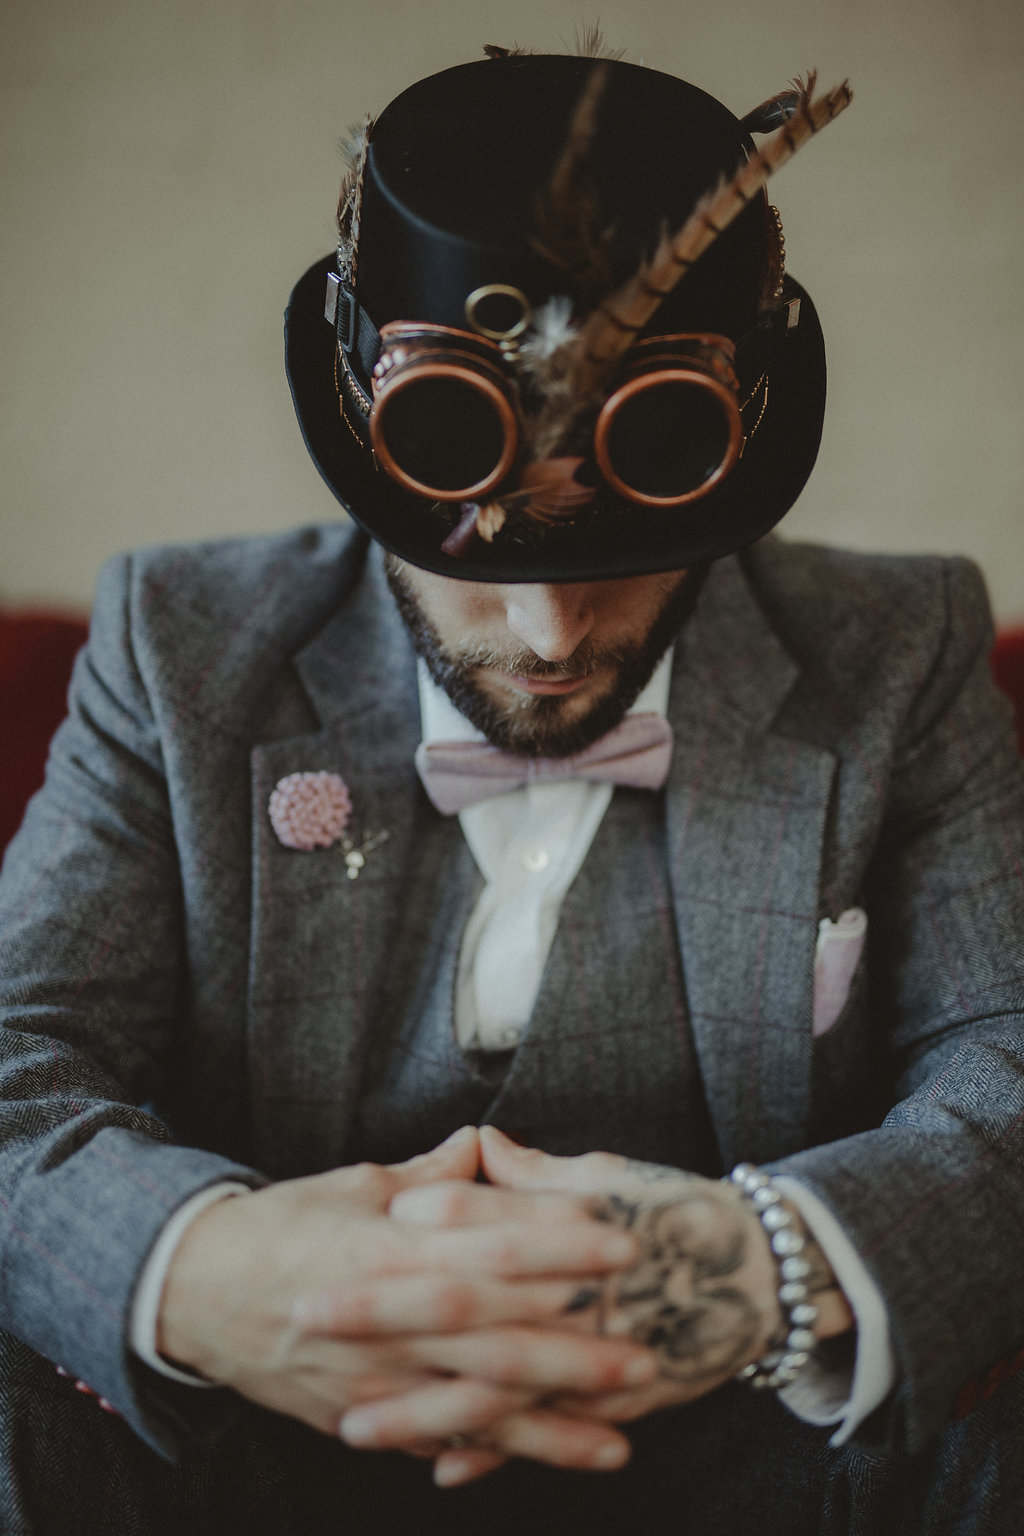 Studio Fotografico Bacci - Steampunk wedding - alternative wedding 70